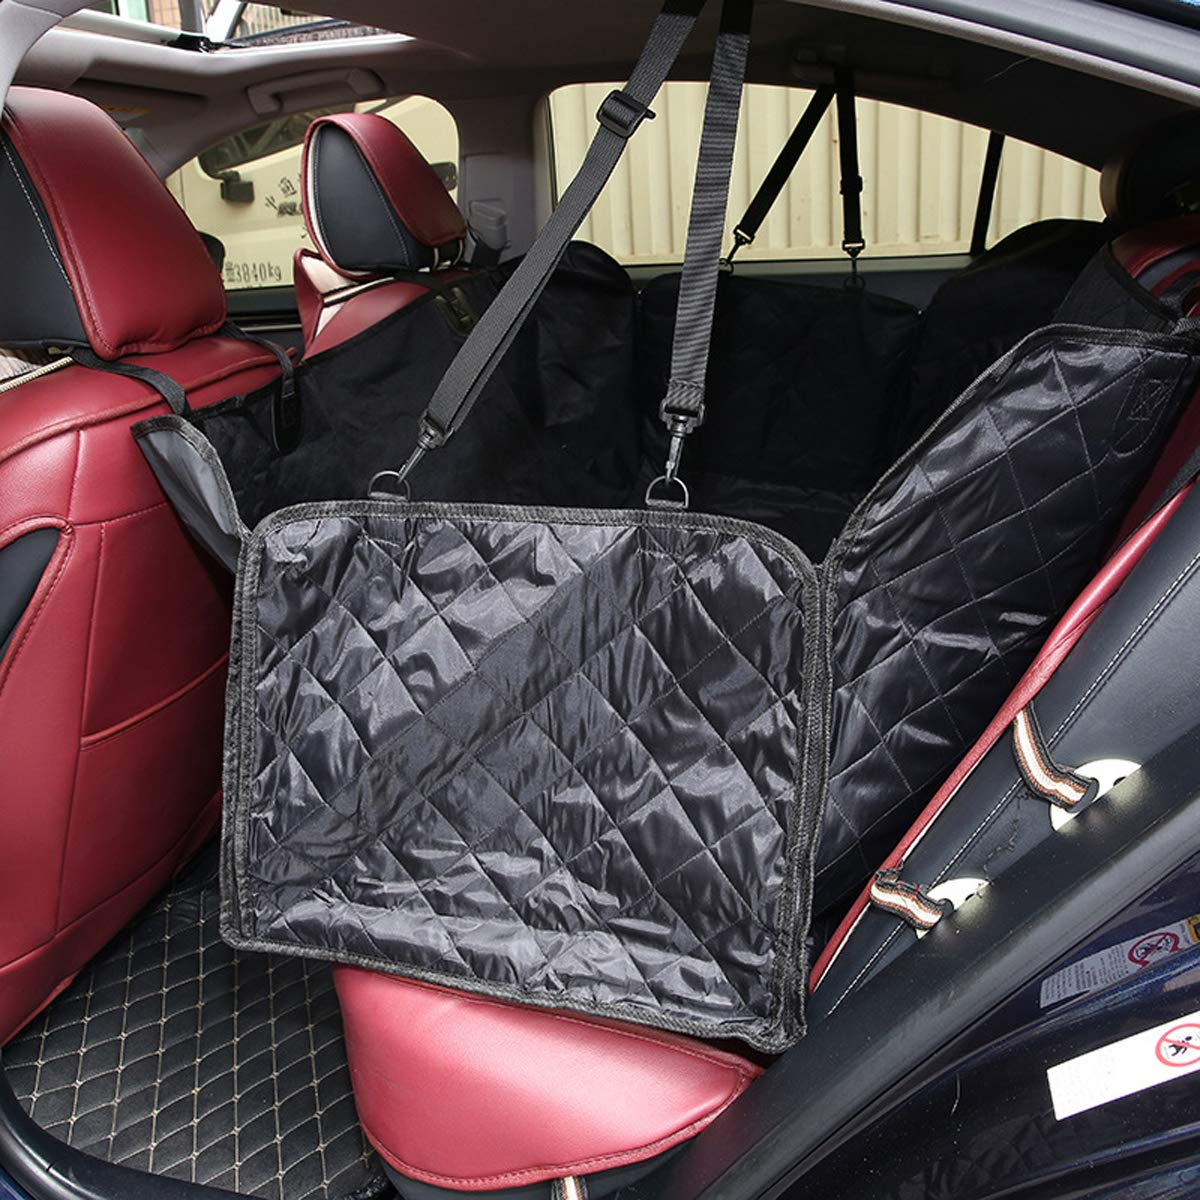 Seat Cover with Zipper Tineer Pet Dog Cat Seat Covers Carry Dog Back Seat Car Predection Scratch Proof Nonslip Car Seat Cover Mat (Seat Cover with Zipper)